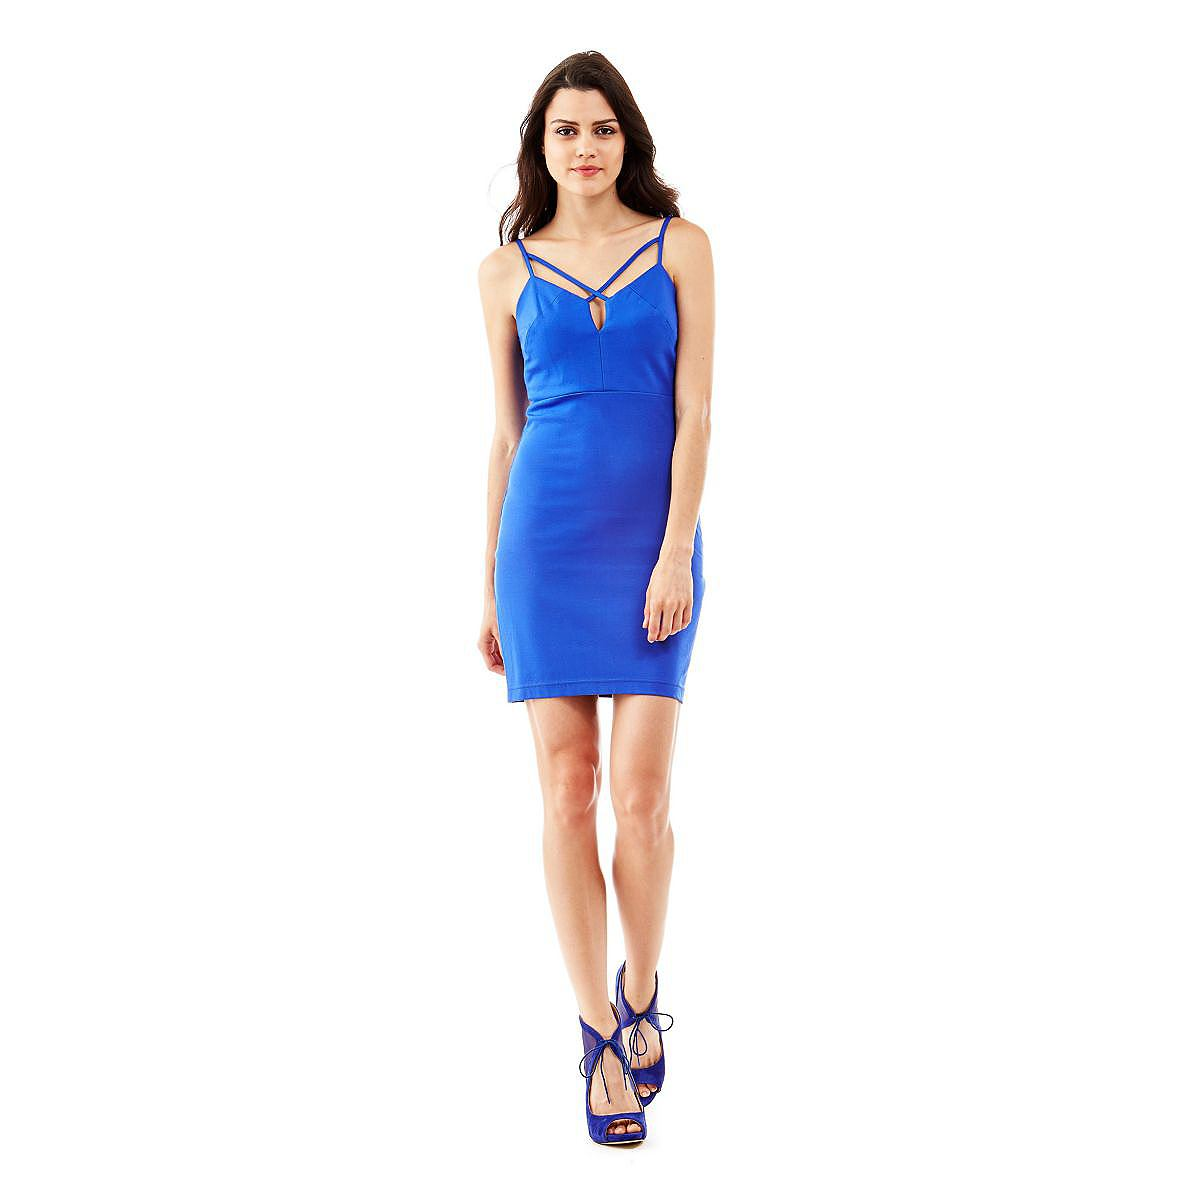 Guess jurk Sexy Strappy Bodycon blauw